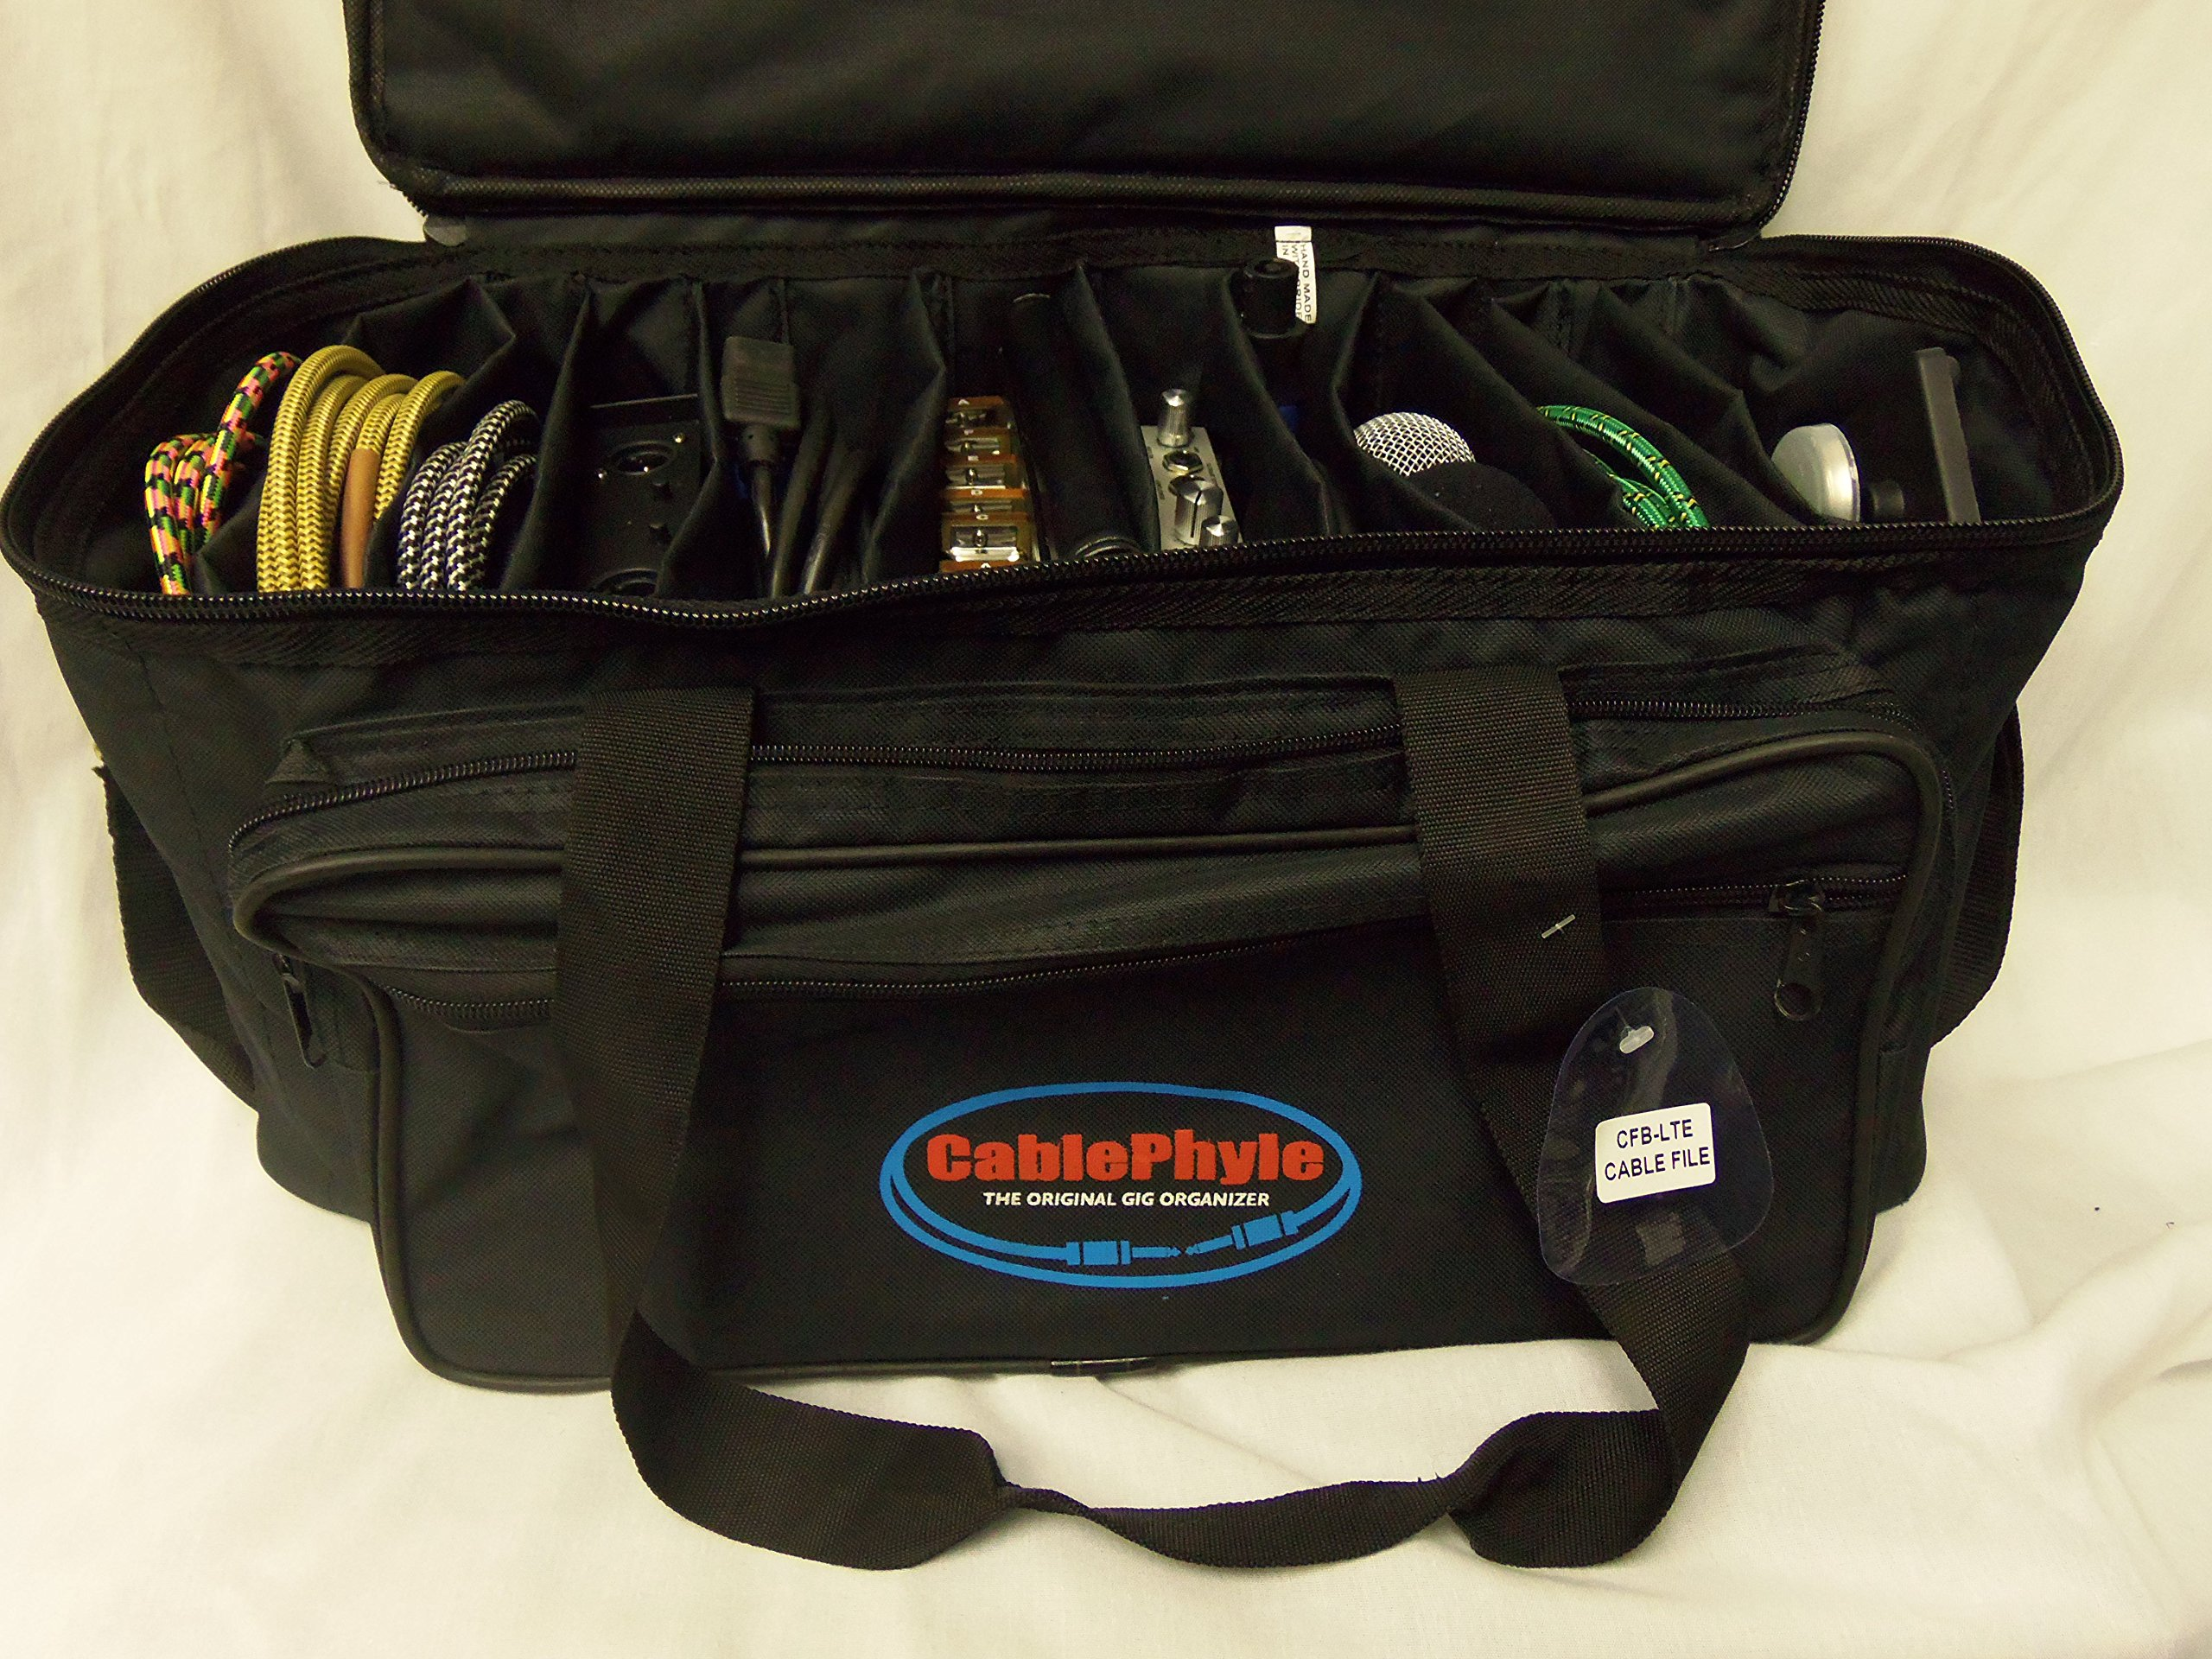 Cable File Bag CFB-LTE - Smaller Lighter Model Cable & Accessories Organizer Gig Bag / Soft Case - CablePhyle by CablePhyle